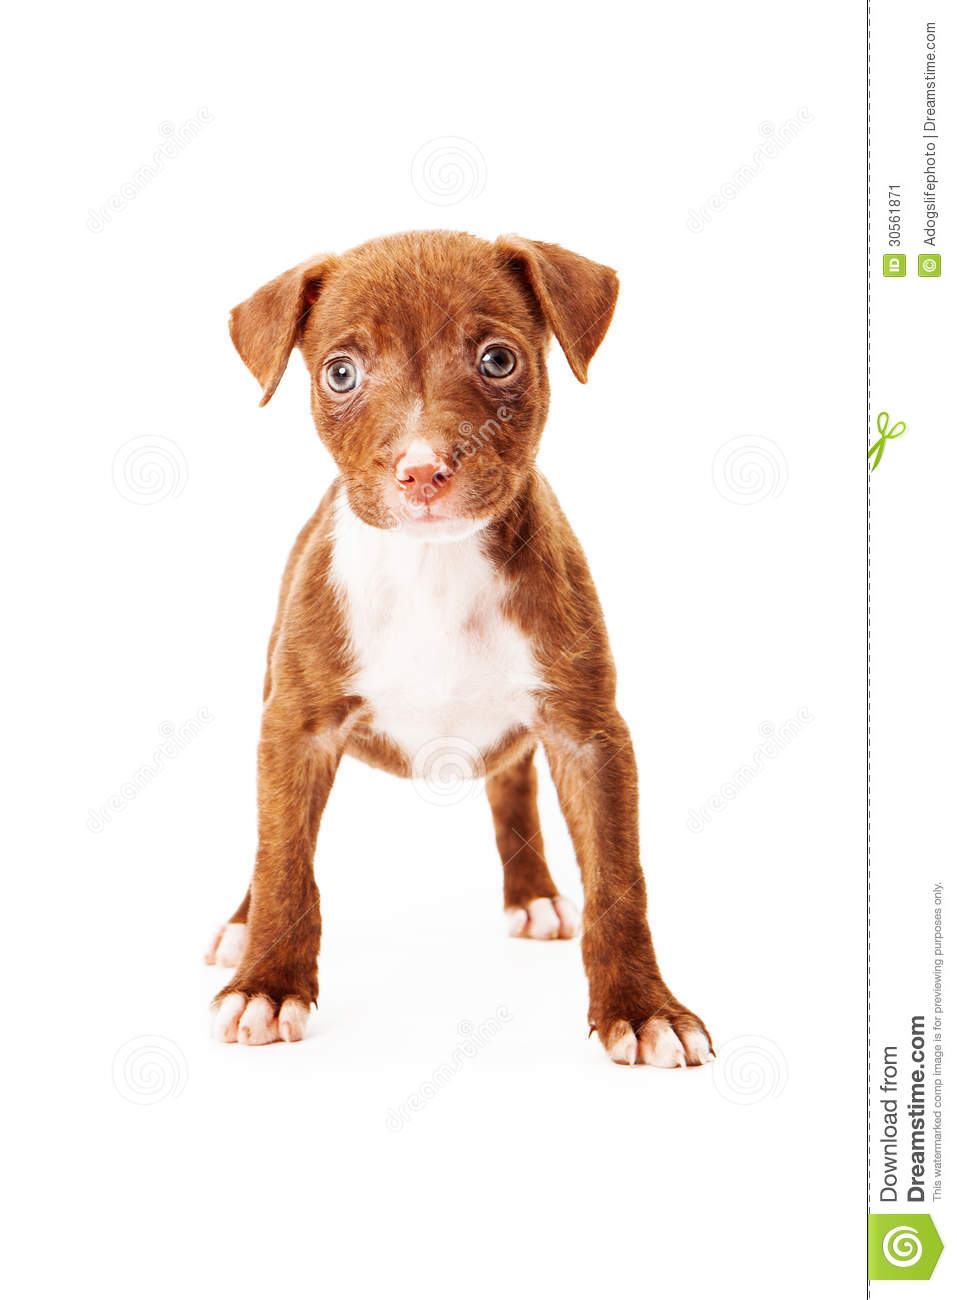 Mixed Breed Puppy Stock Image - Image: 30561871